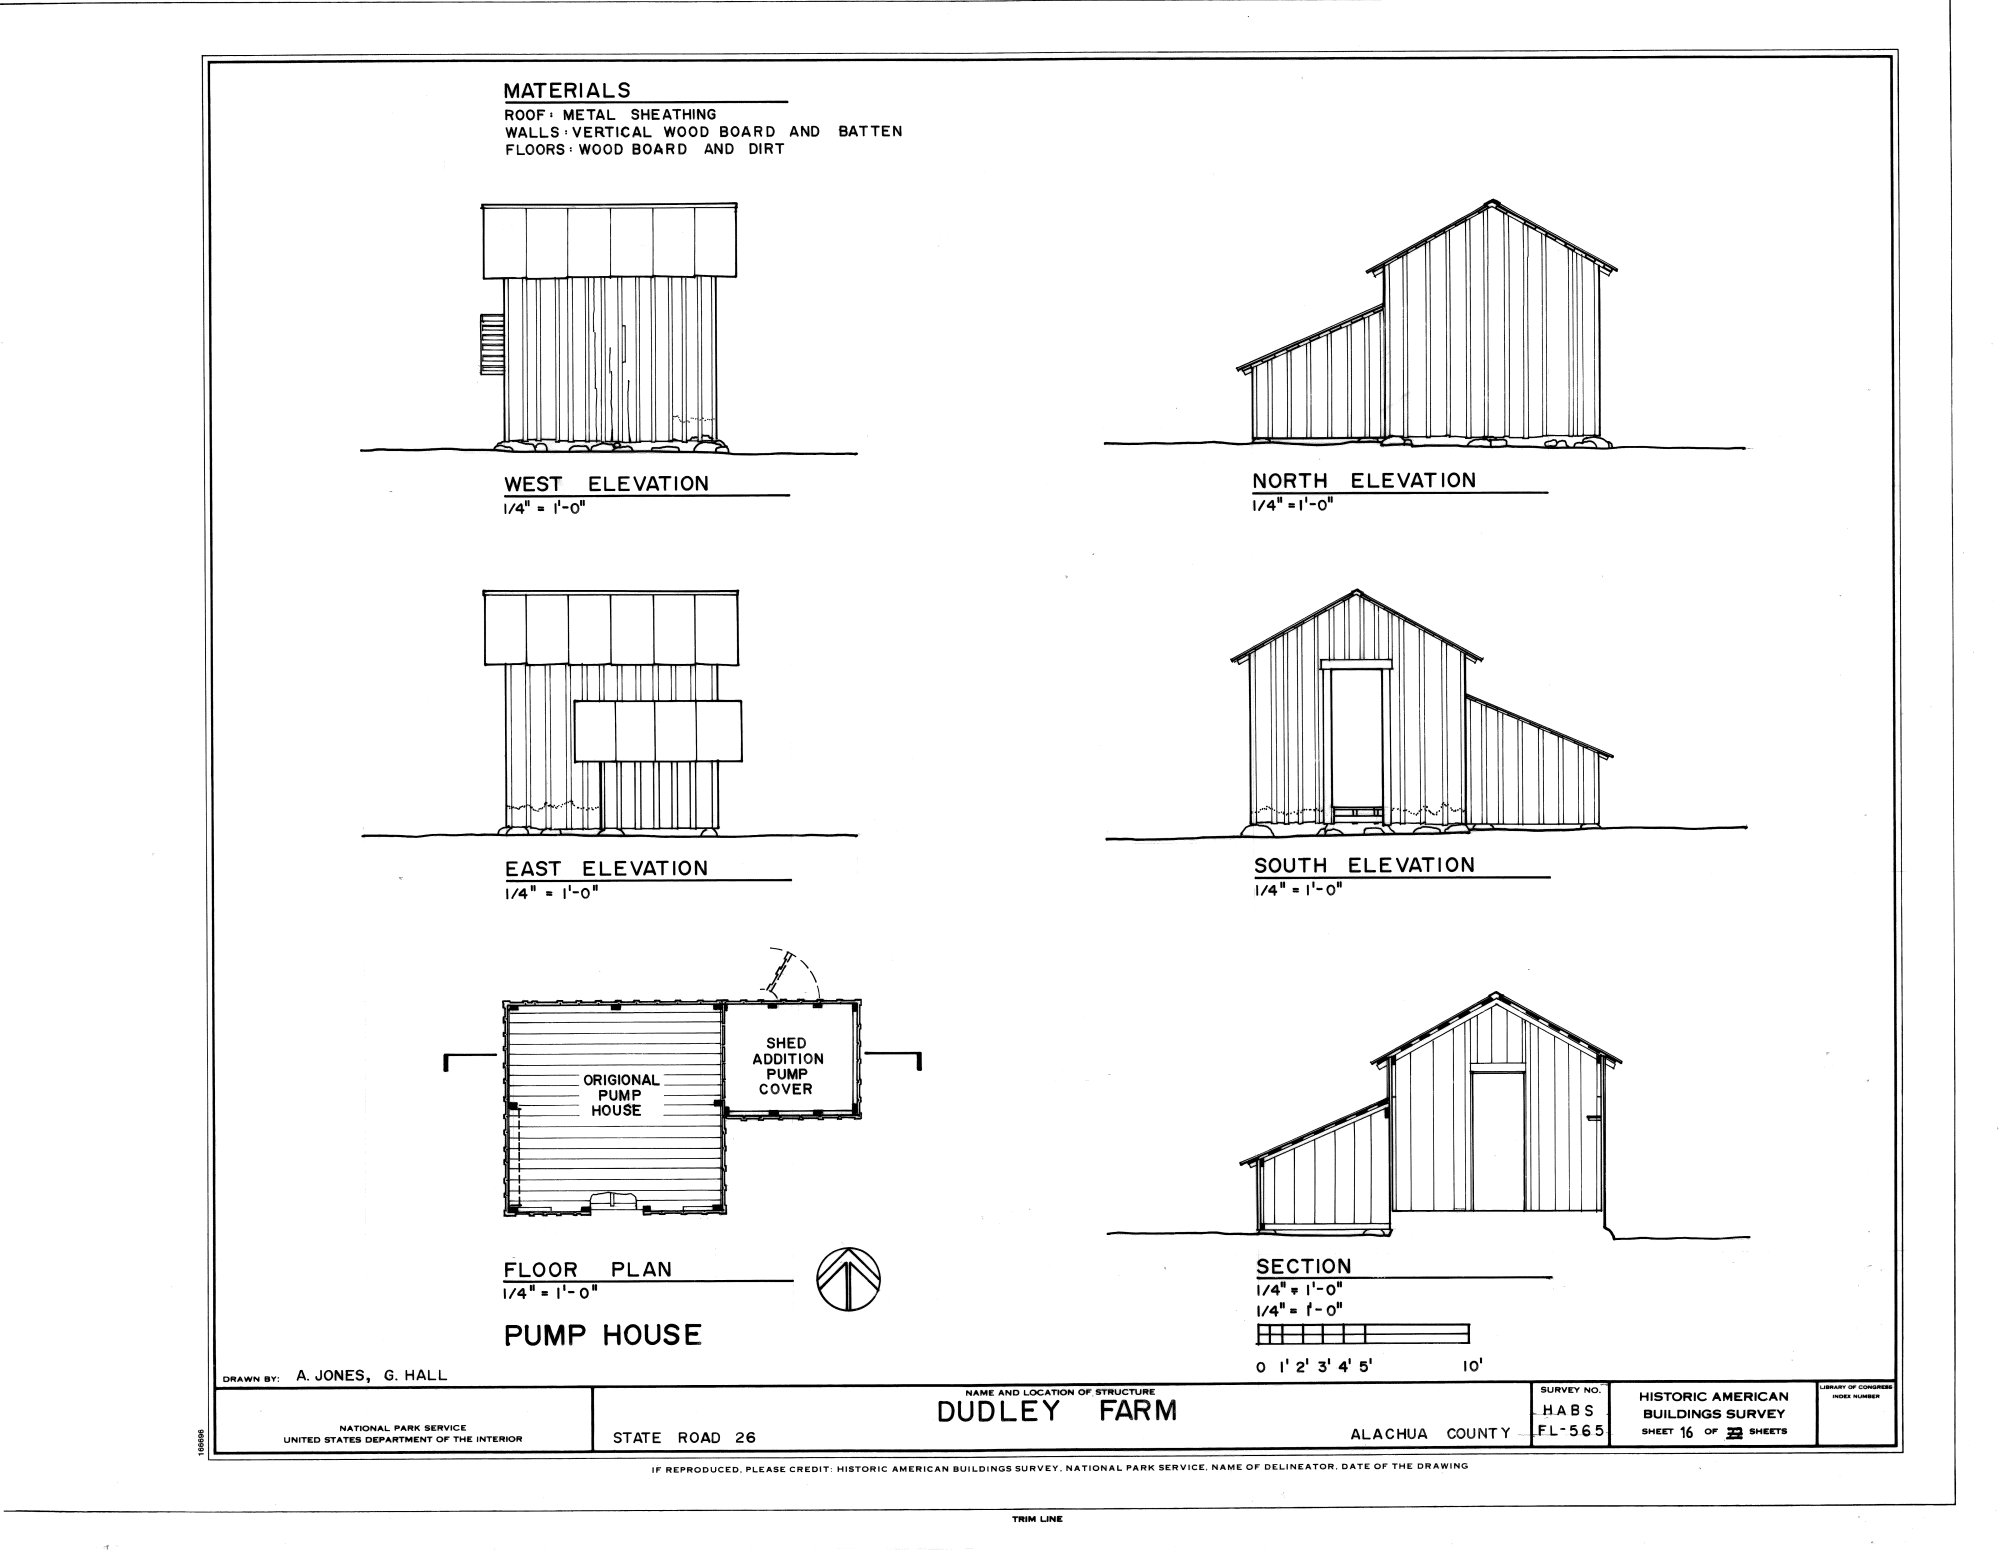 hight resolution of file pump house elevations floor plan and section dudley farm farmhouse and outbuildings 18730 west newberry road newberry alachua county